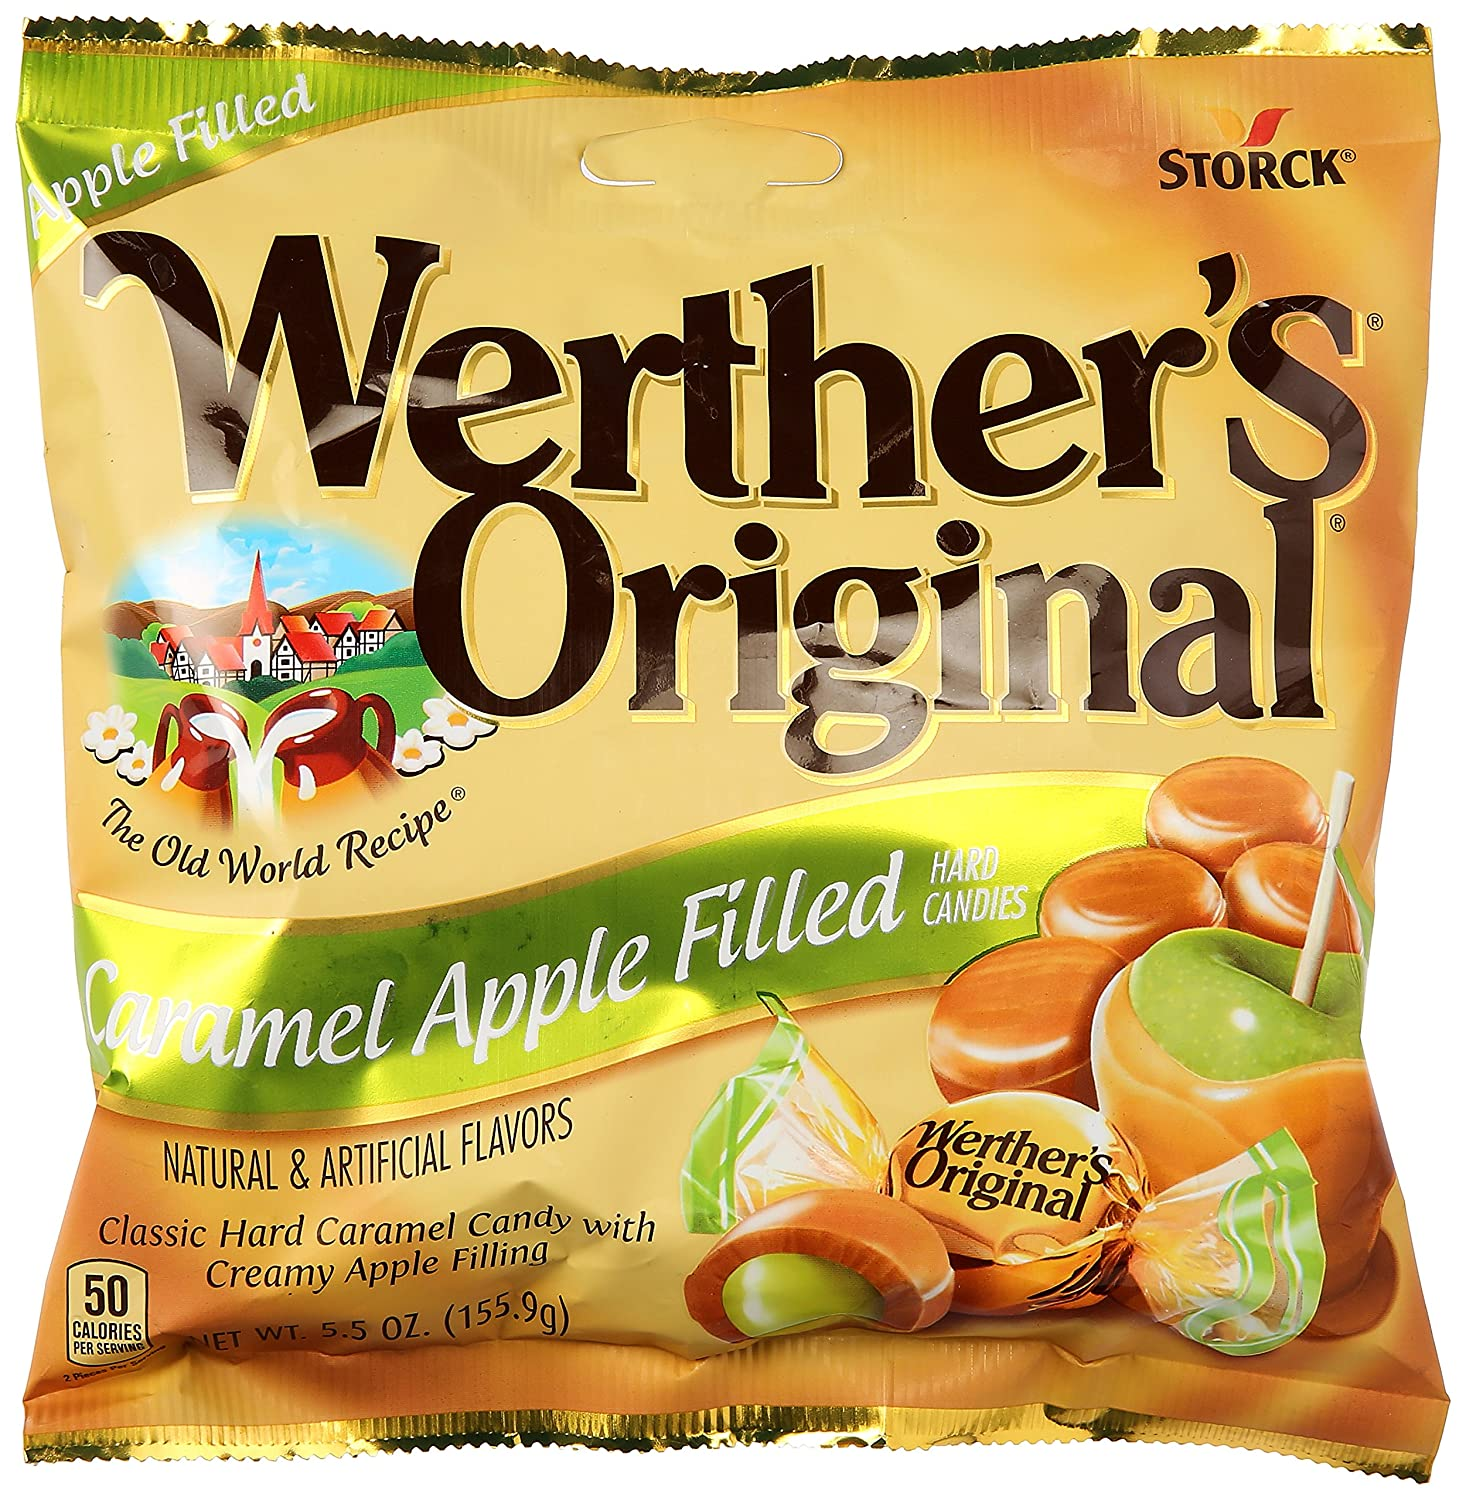 Werthers Caramel Apple Filled Hard Candies, 5.5 oz